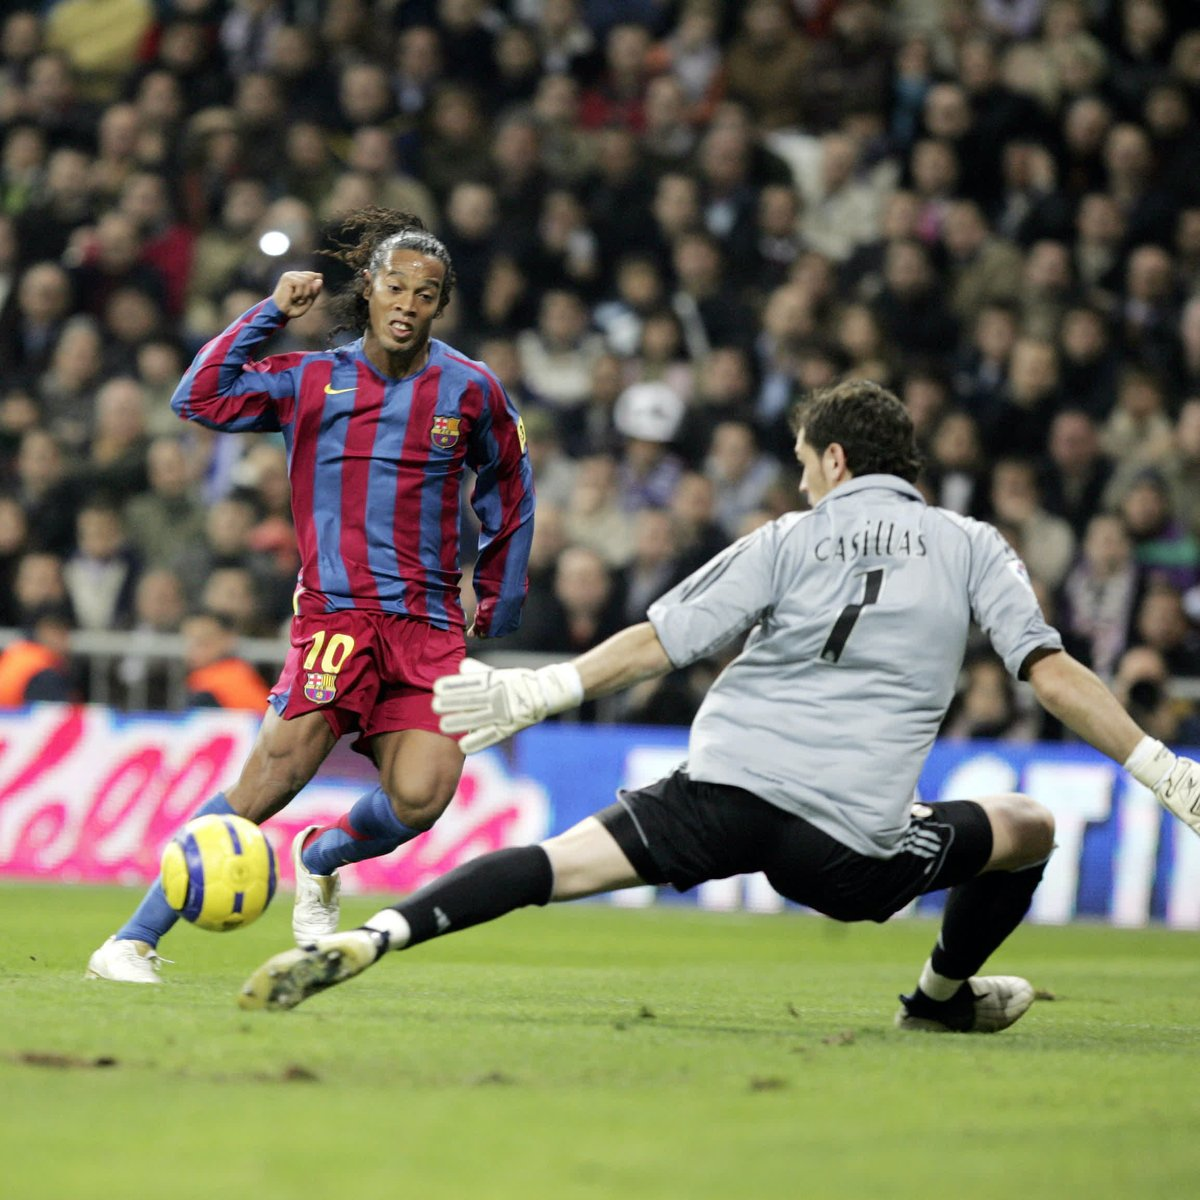 ON THIS DAY   November 19, 2005   @10Ronaldinho scored twice in our 3-0  #ElClásico win at the Santiago Bernabéu — including this goal. So astonishing was Ronnie's performance that day, that he received a standing ovation from the Real Madrid fans.  Unforgettable! !